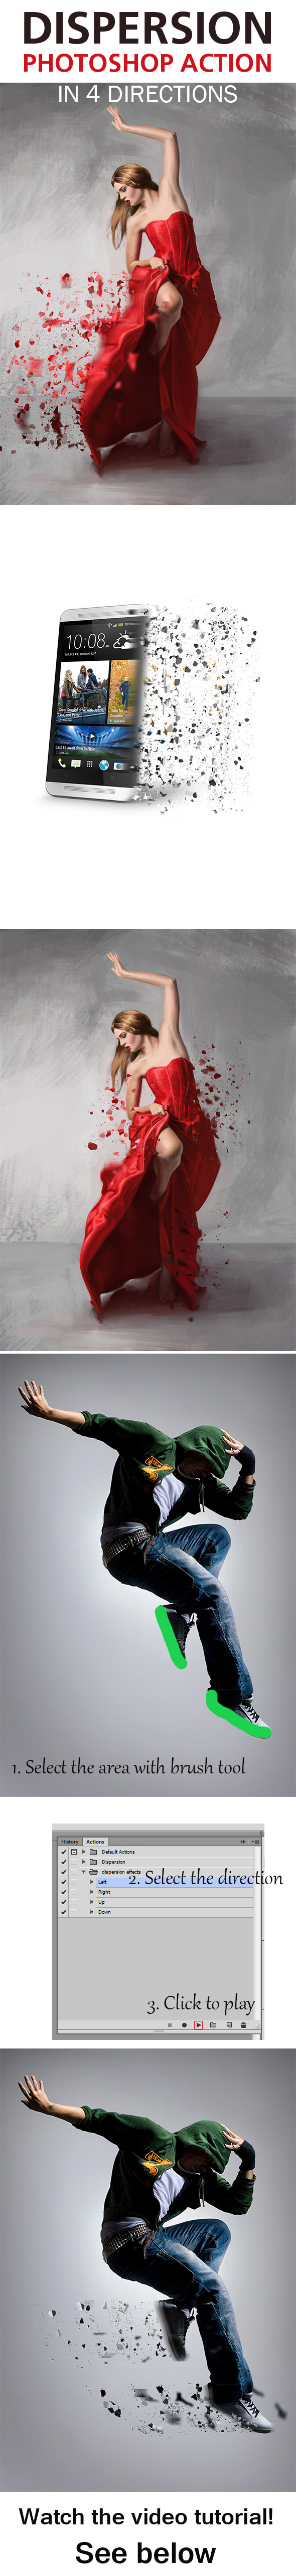 Dispersion Photoshop Effect Action - Photo Effects Actions